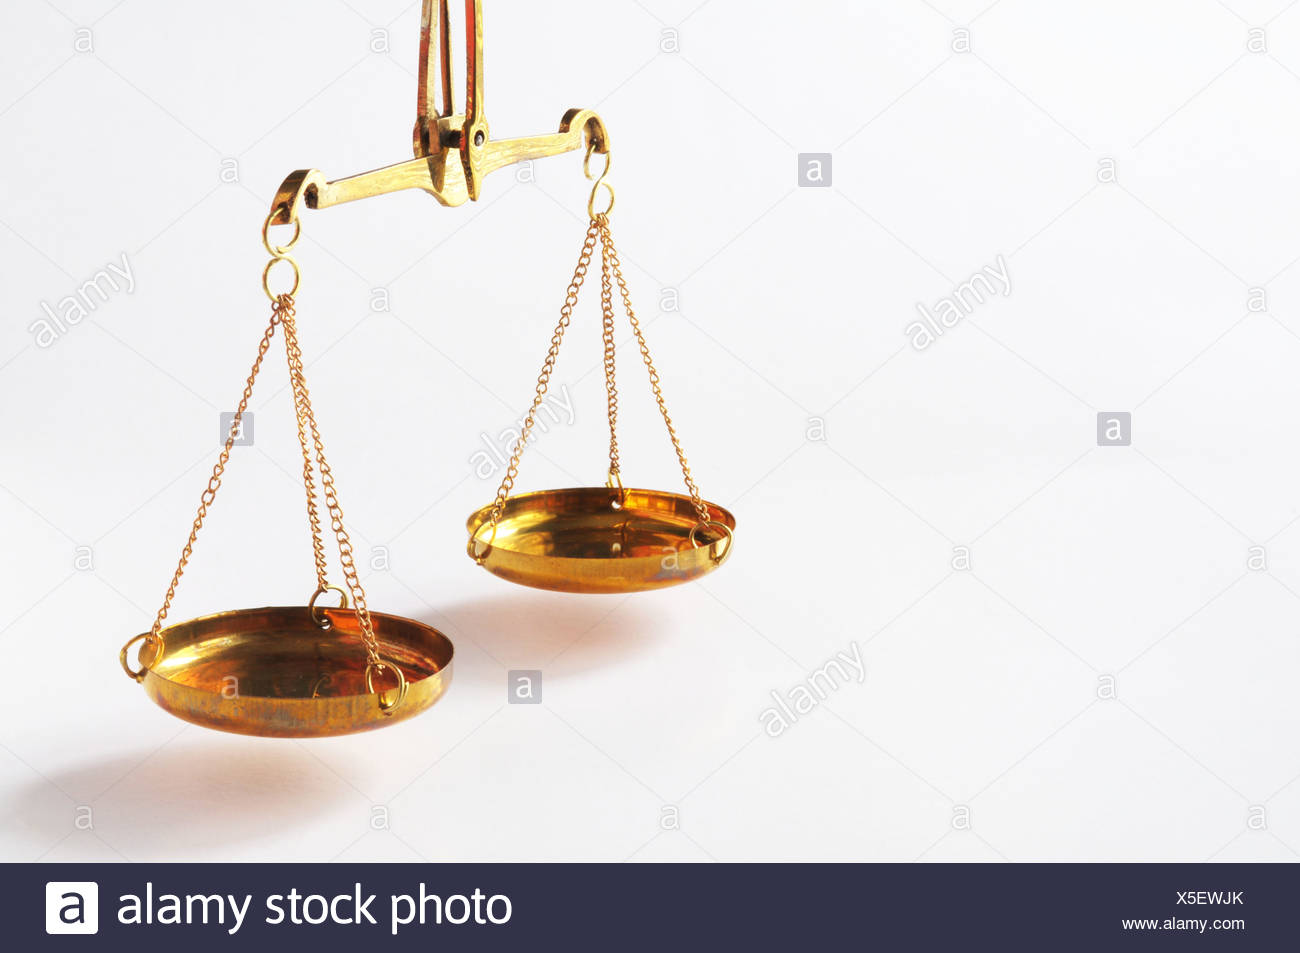 scale or scales with copyspace showing law justice or legal concept - Stock Image